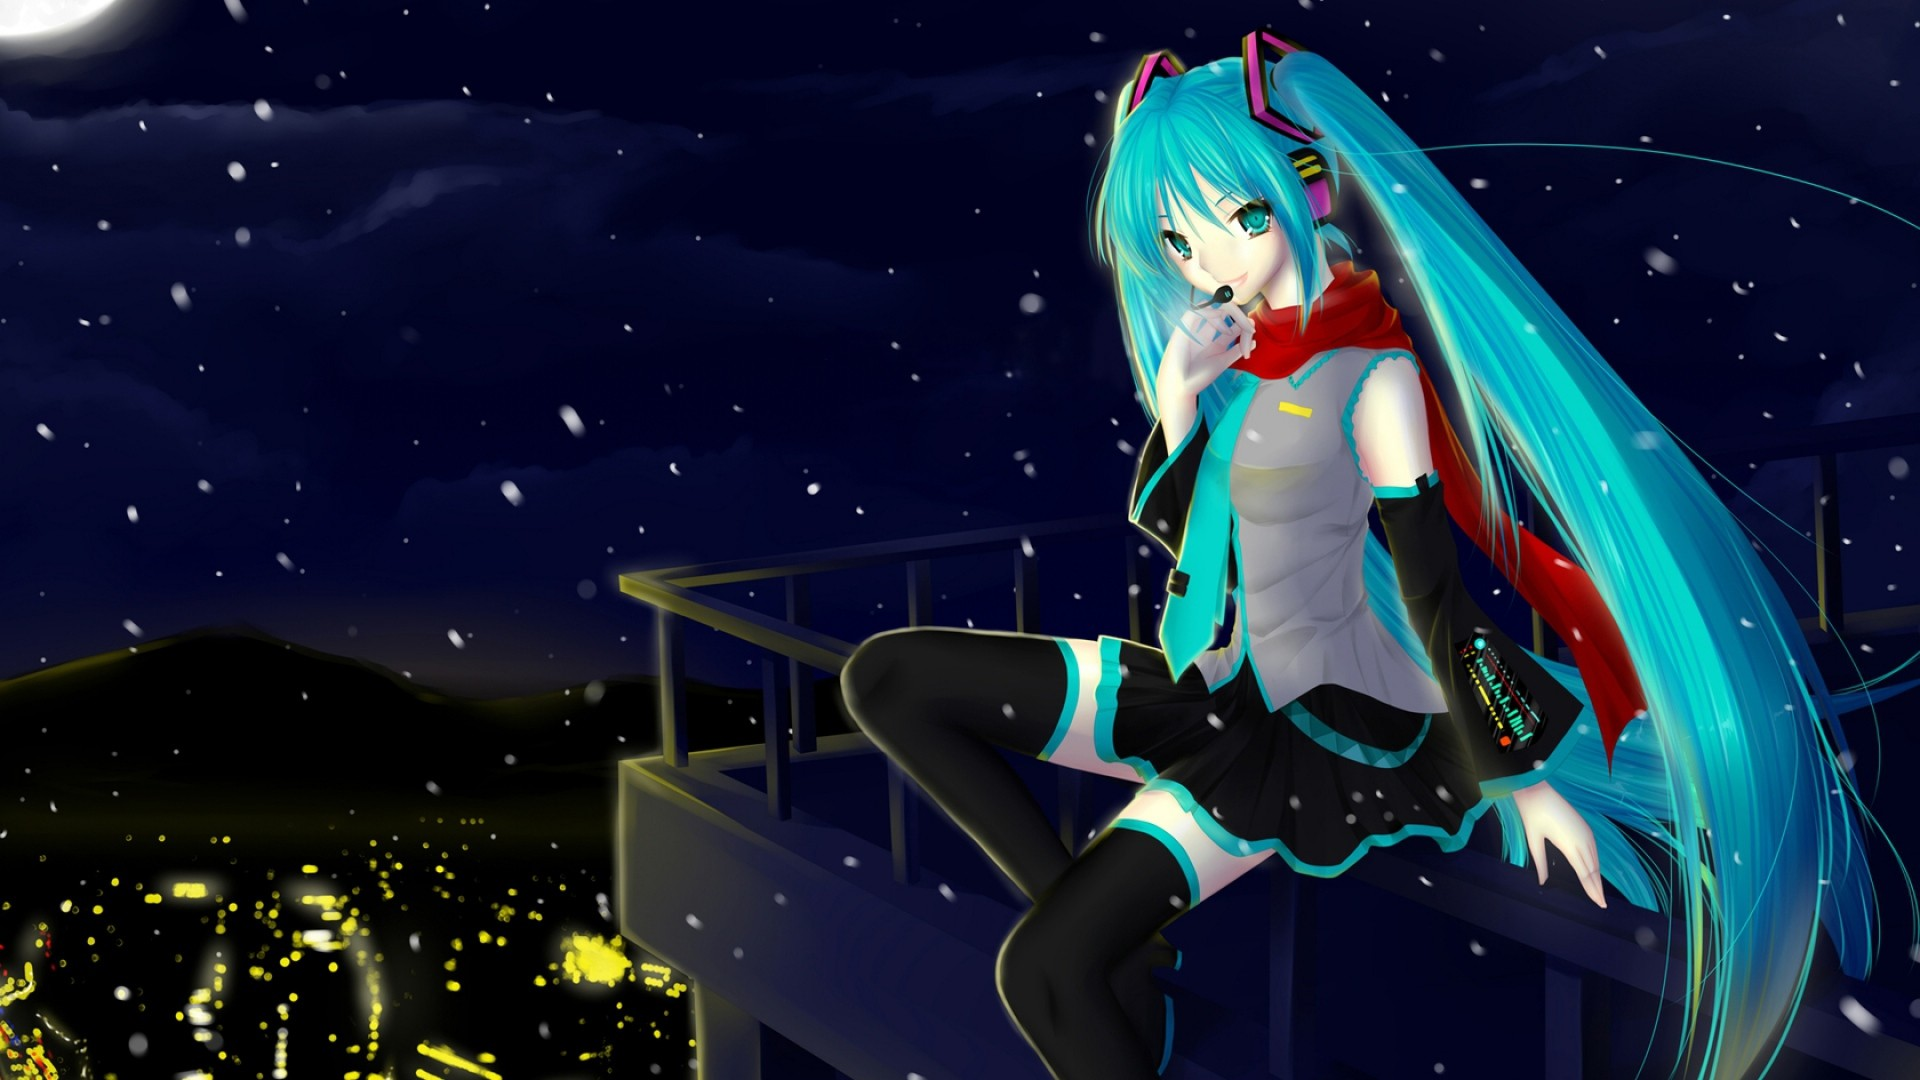 1920x1080 Preview wallpaper hatsune miku, vocaloid, night, city, girl, microphone,  scarf